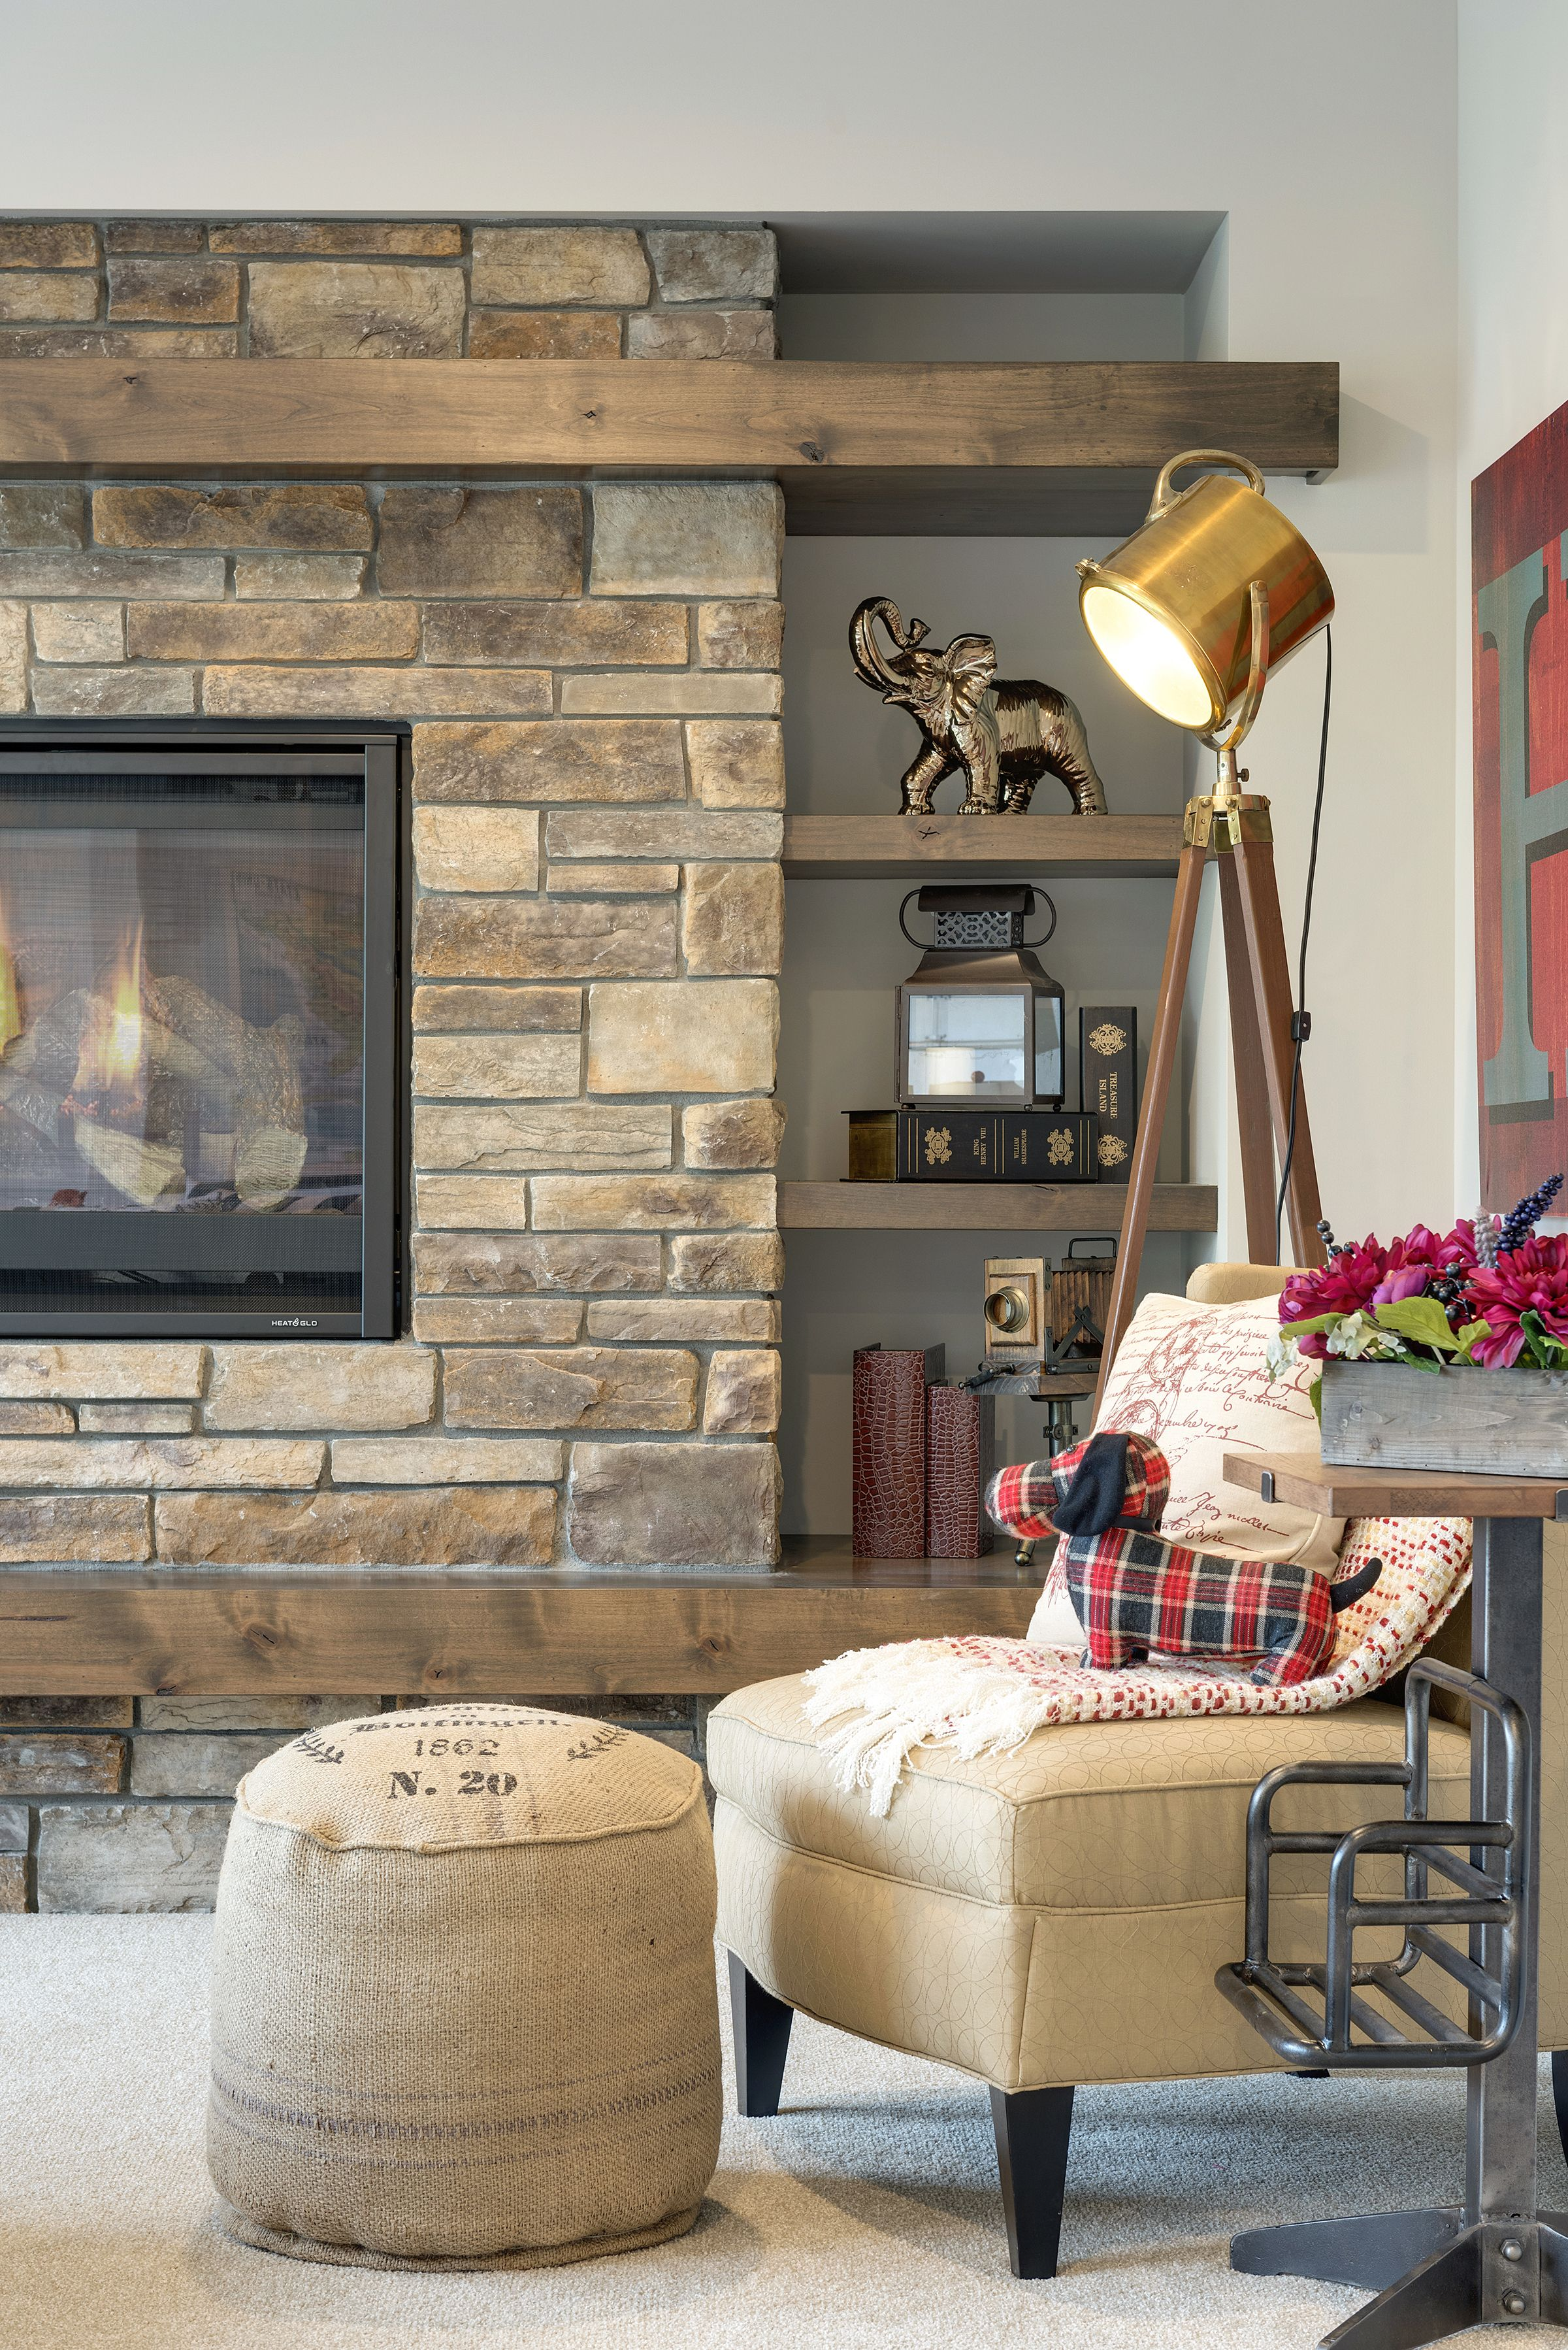 A Mid Wall Fireplace Heightens The Level Of Coziness In This